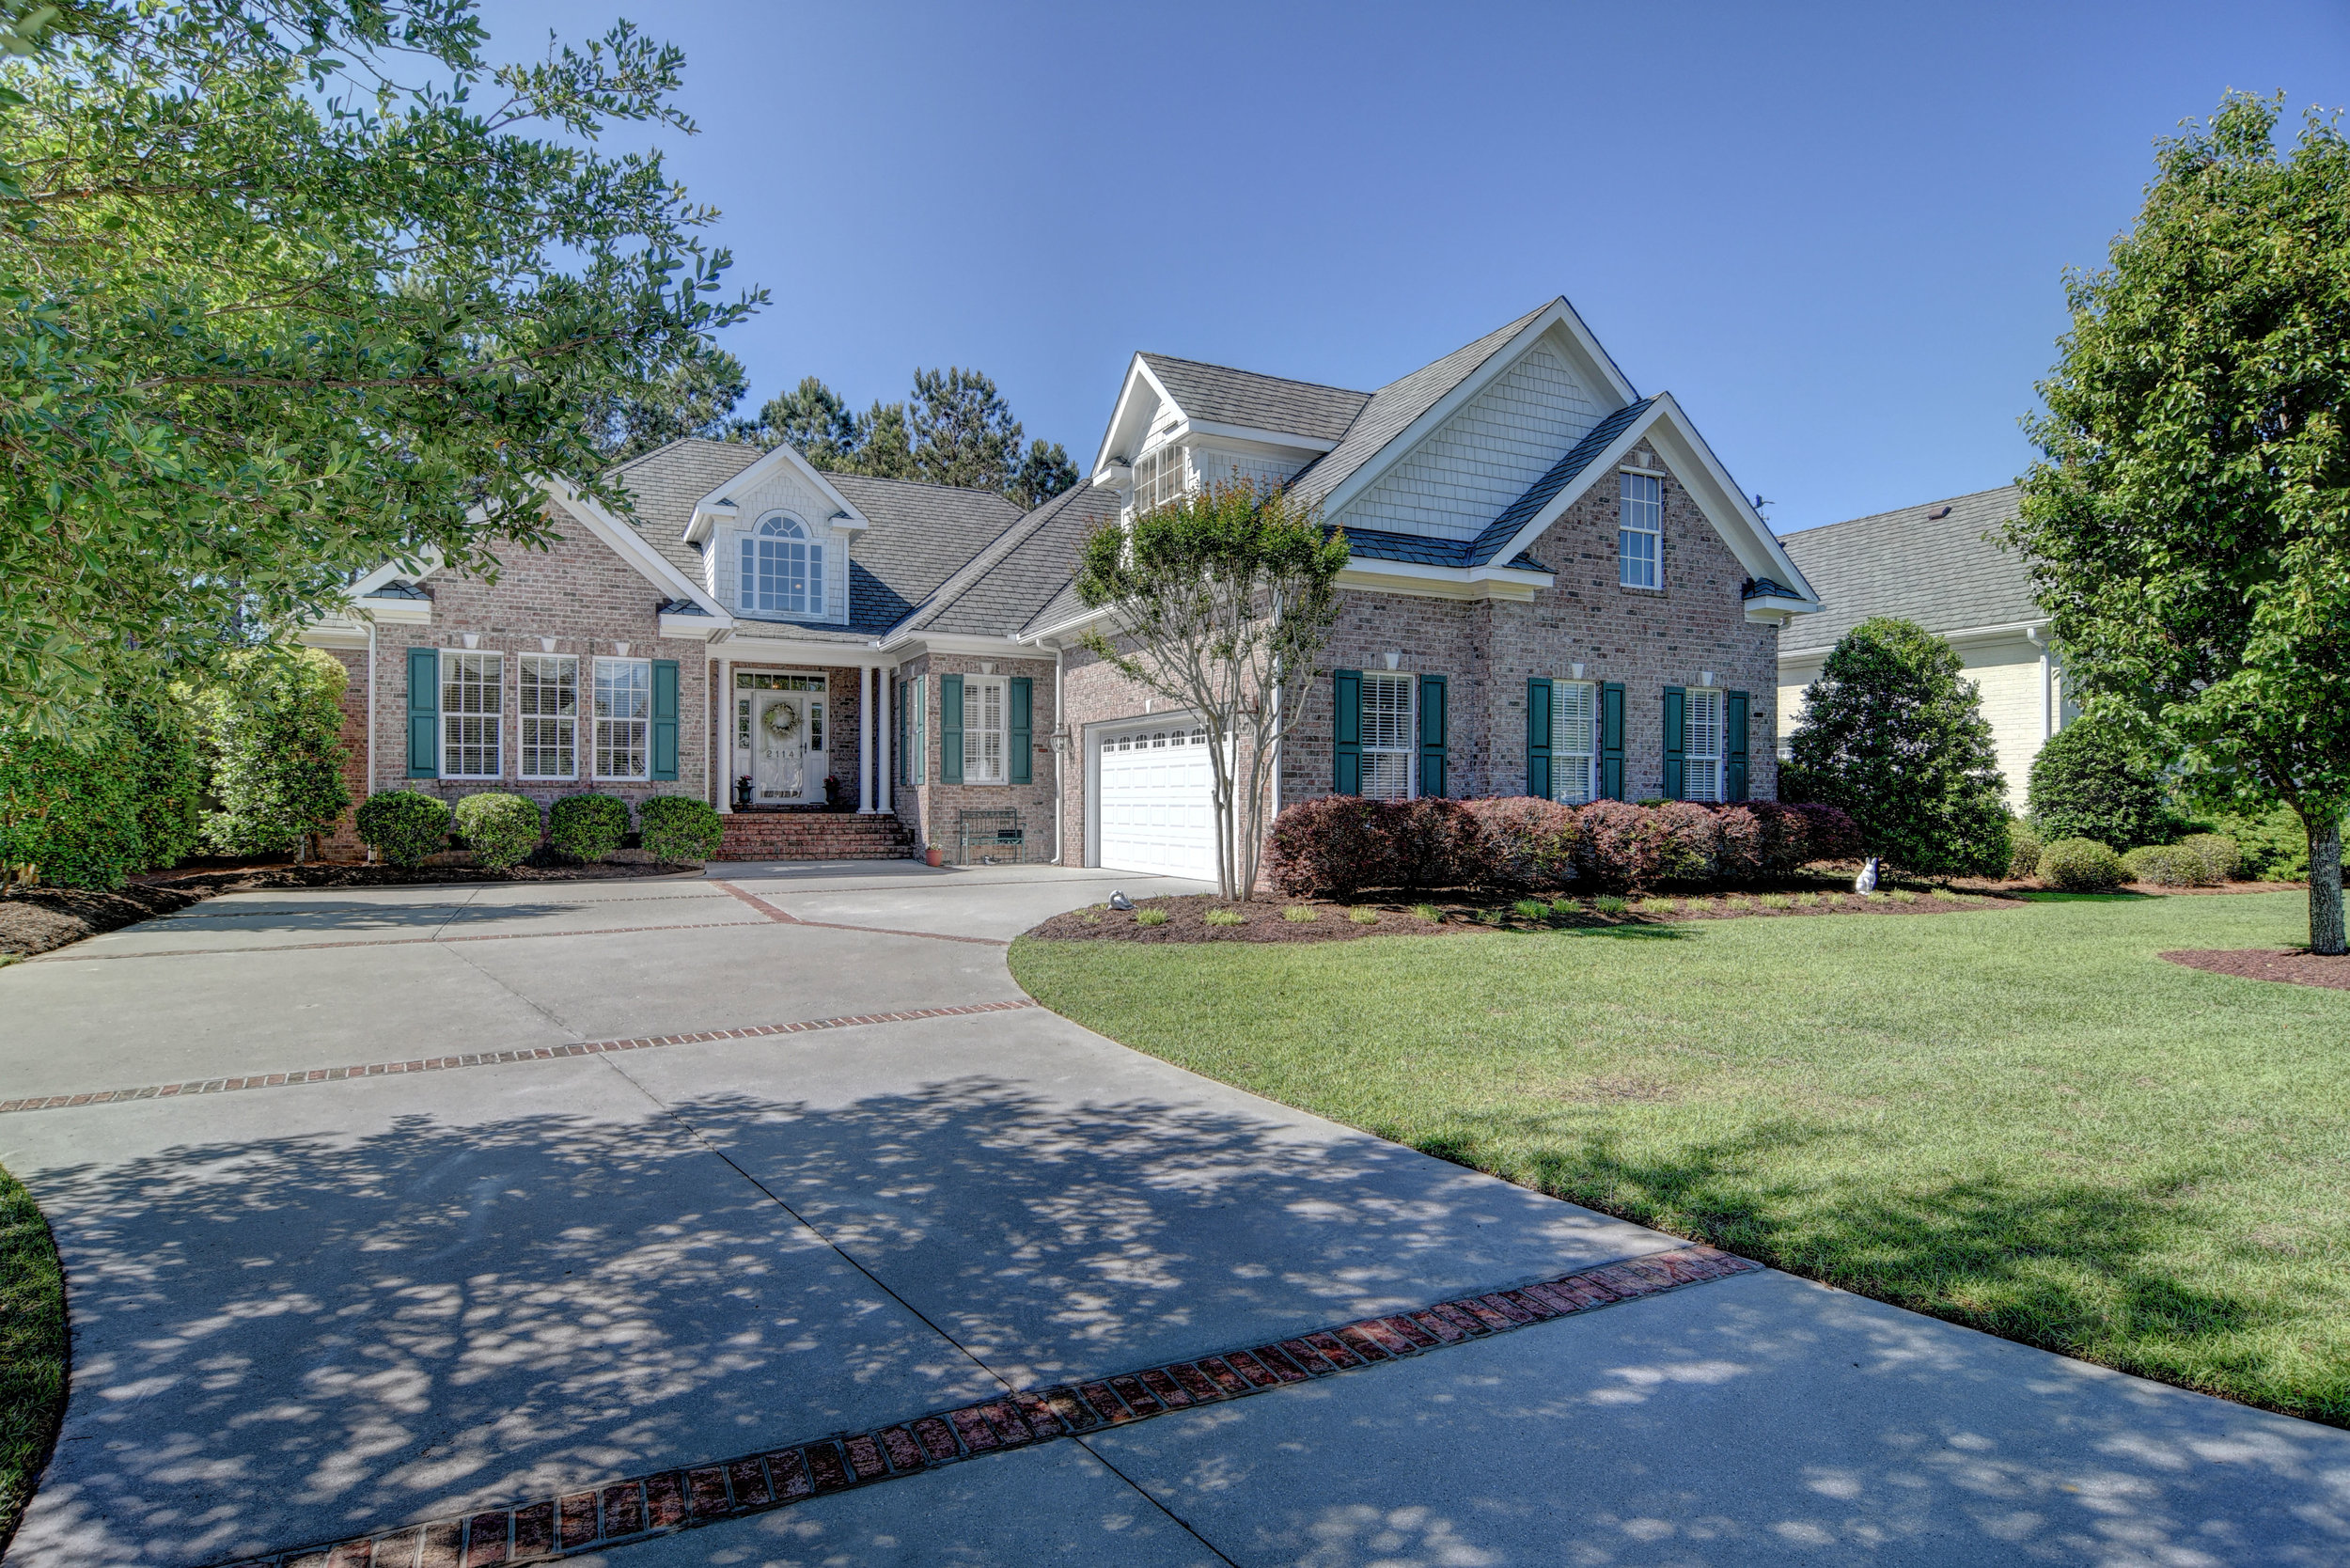 2114 Bay Colony Ln Wilmington-print-001-2-Front Exterior-4200x2802-300dpi.jpg